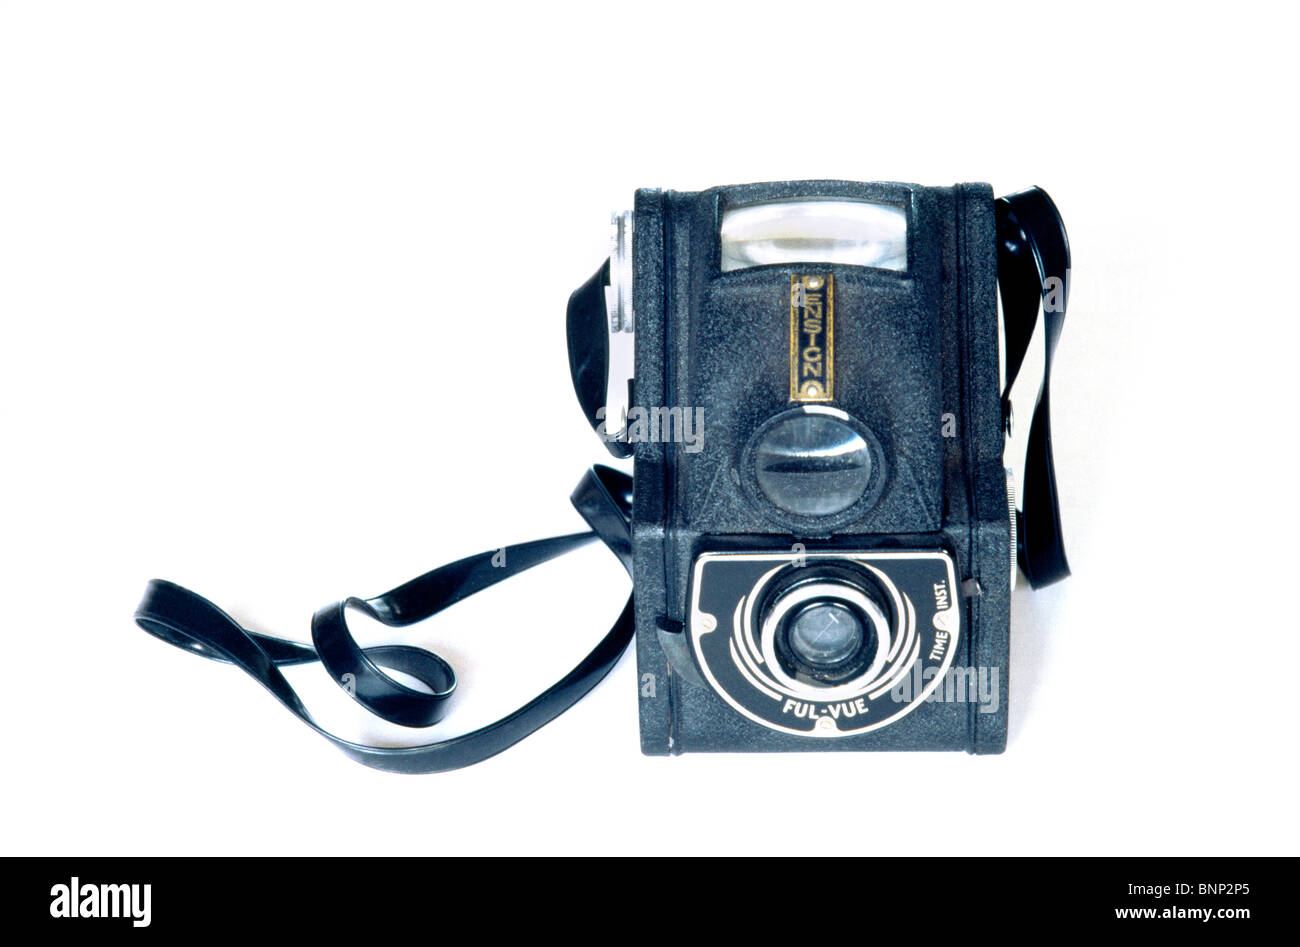 Old Camera Ensign Ful-Vue 'Bubble Camera' - Stock Image